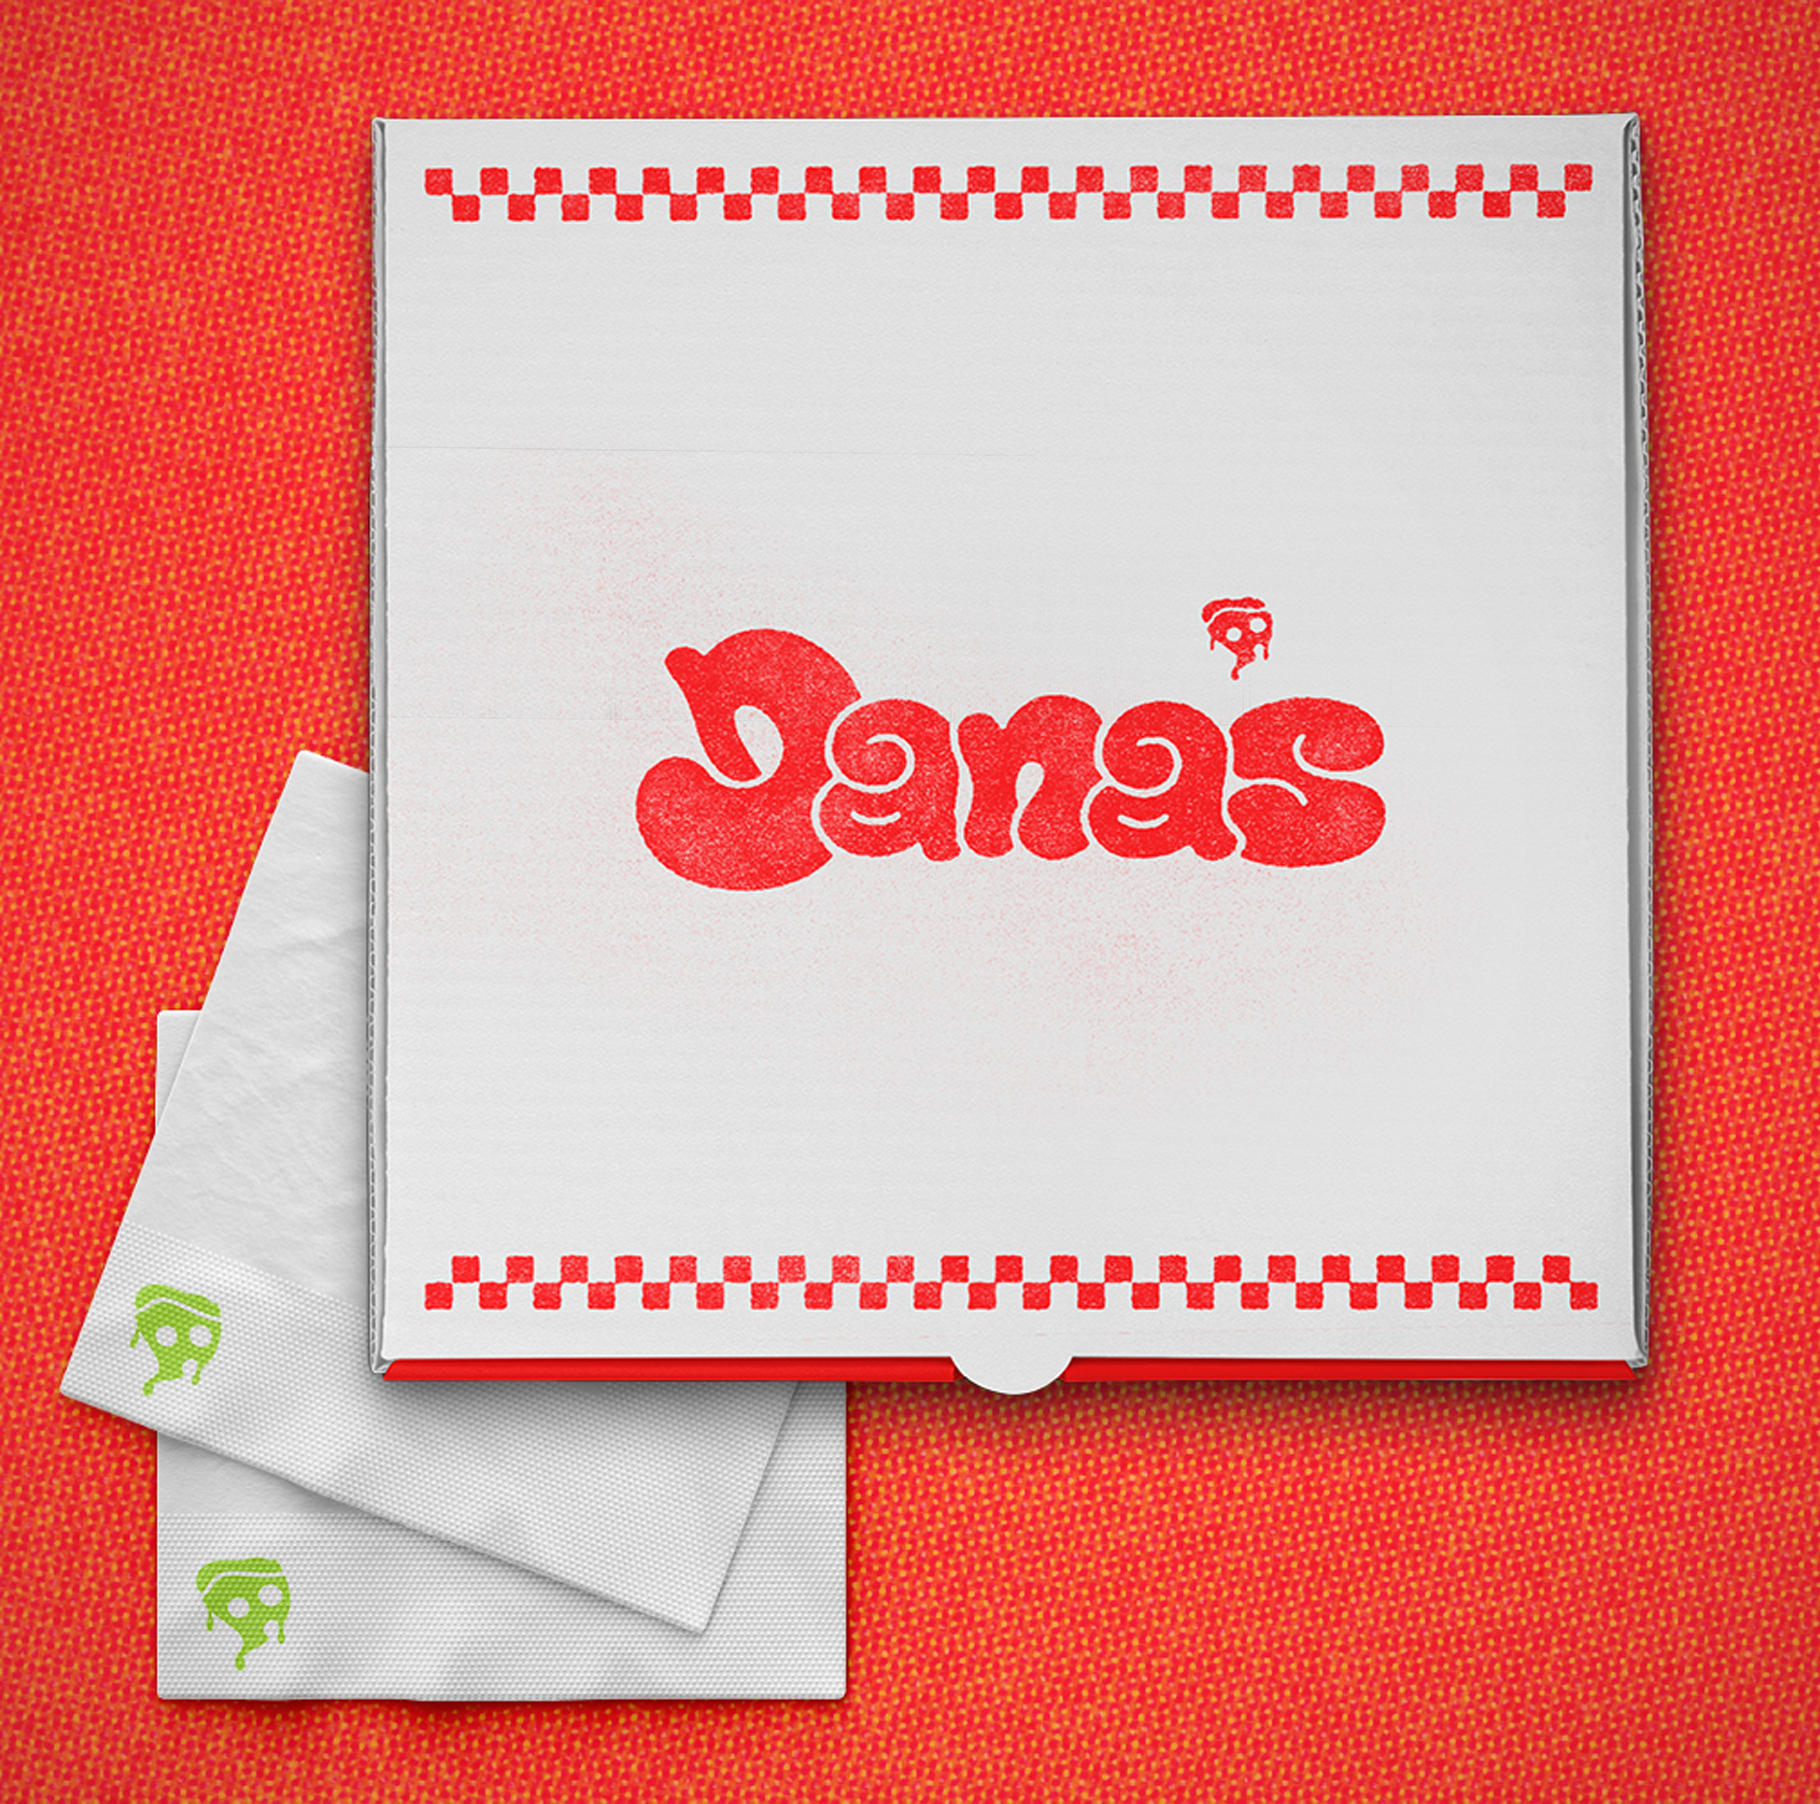 a pizza box displaying the name Dana's and two napkins